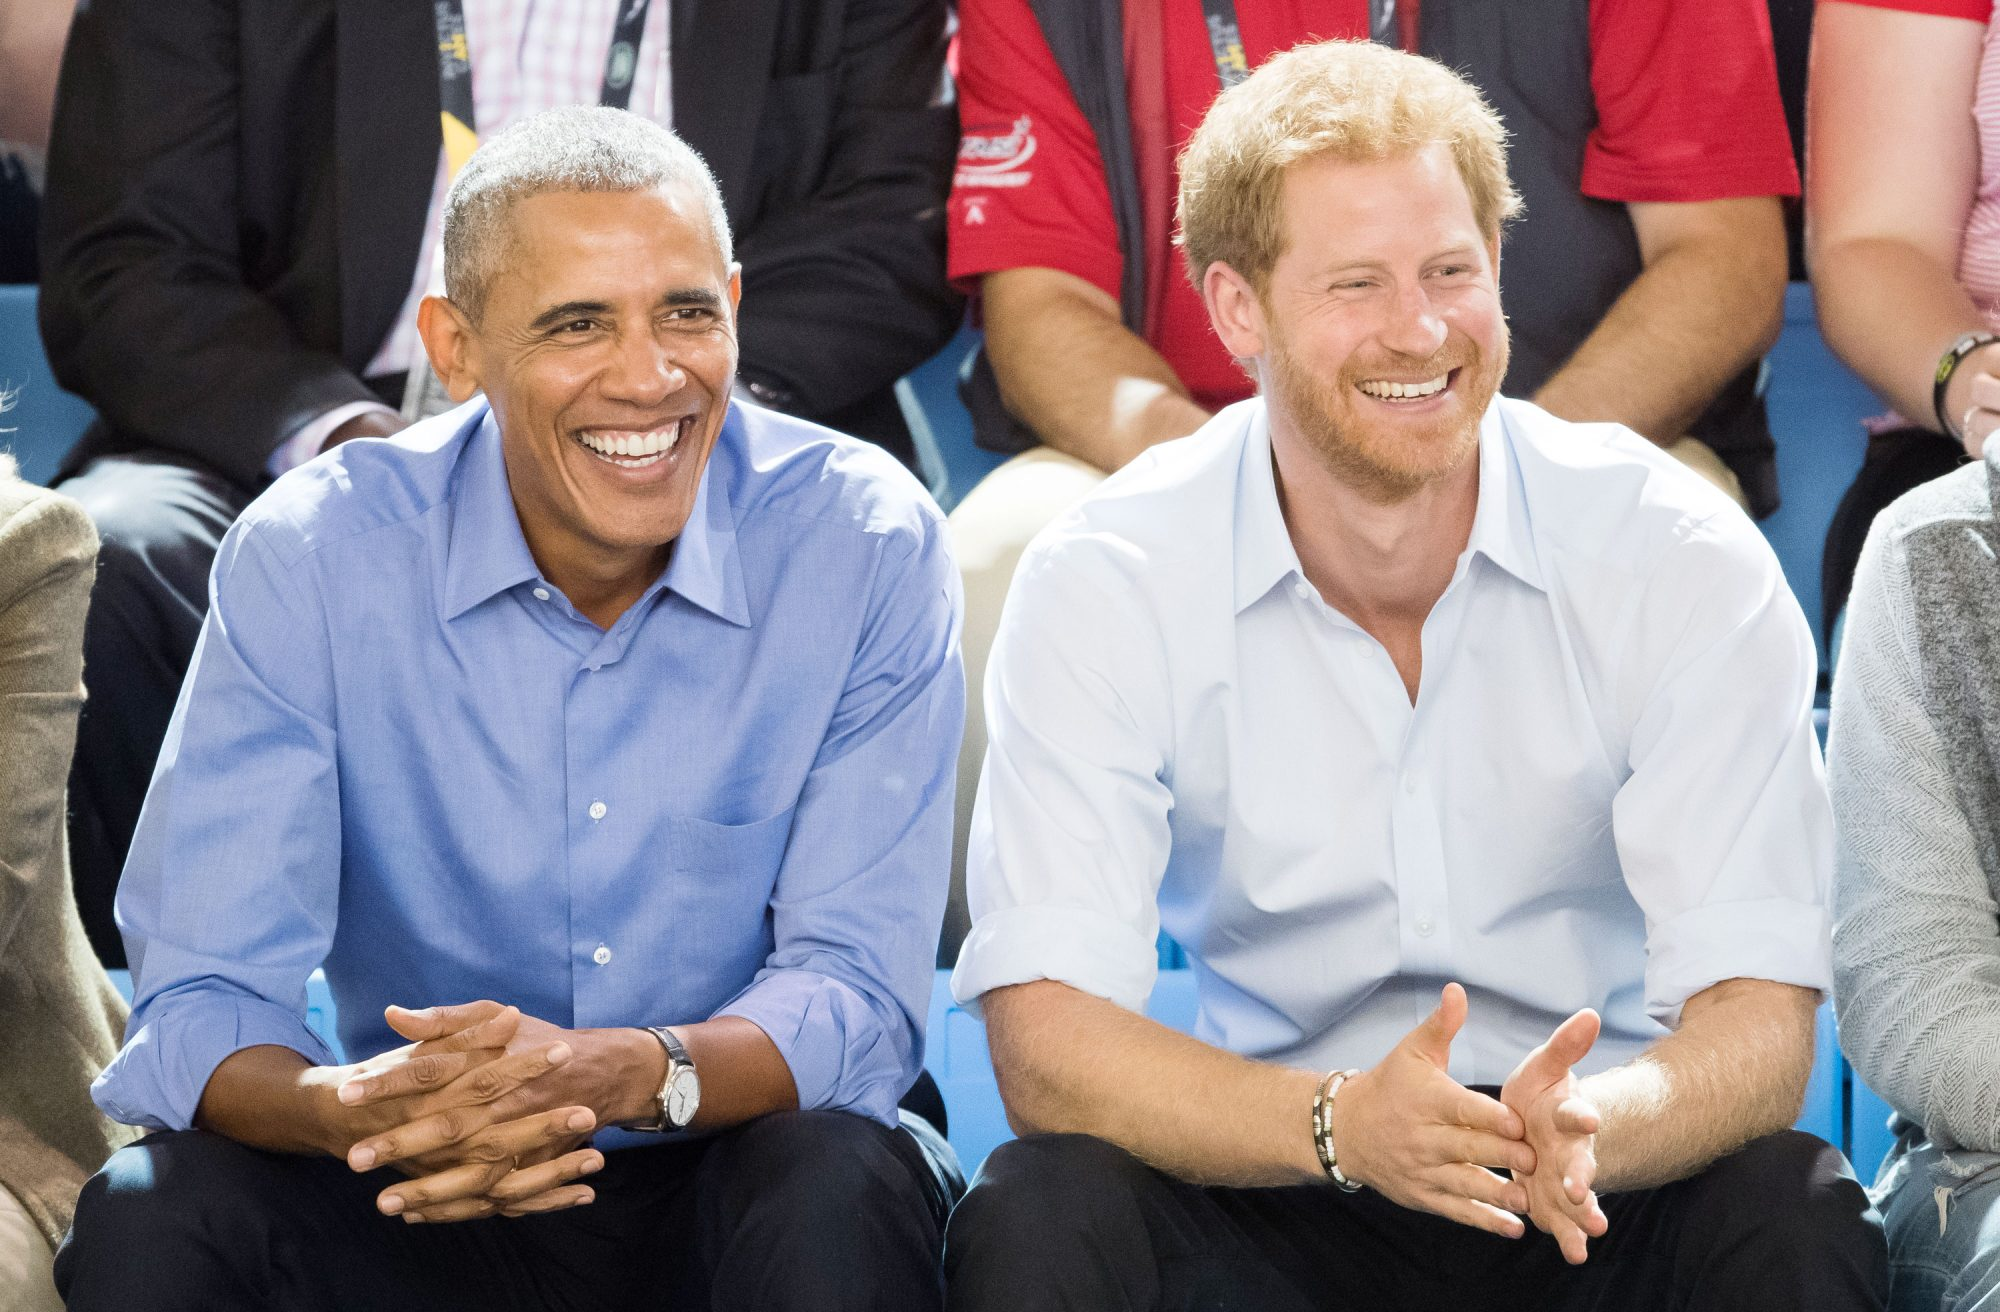 Prince Harry, Meghan Markle won't have political guests at wedding